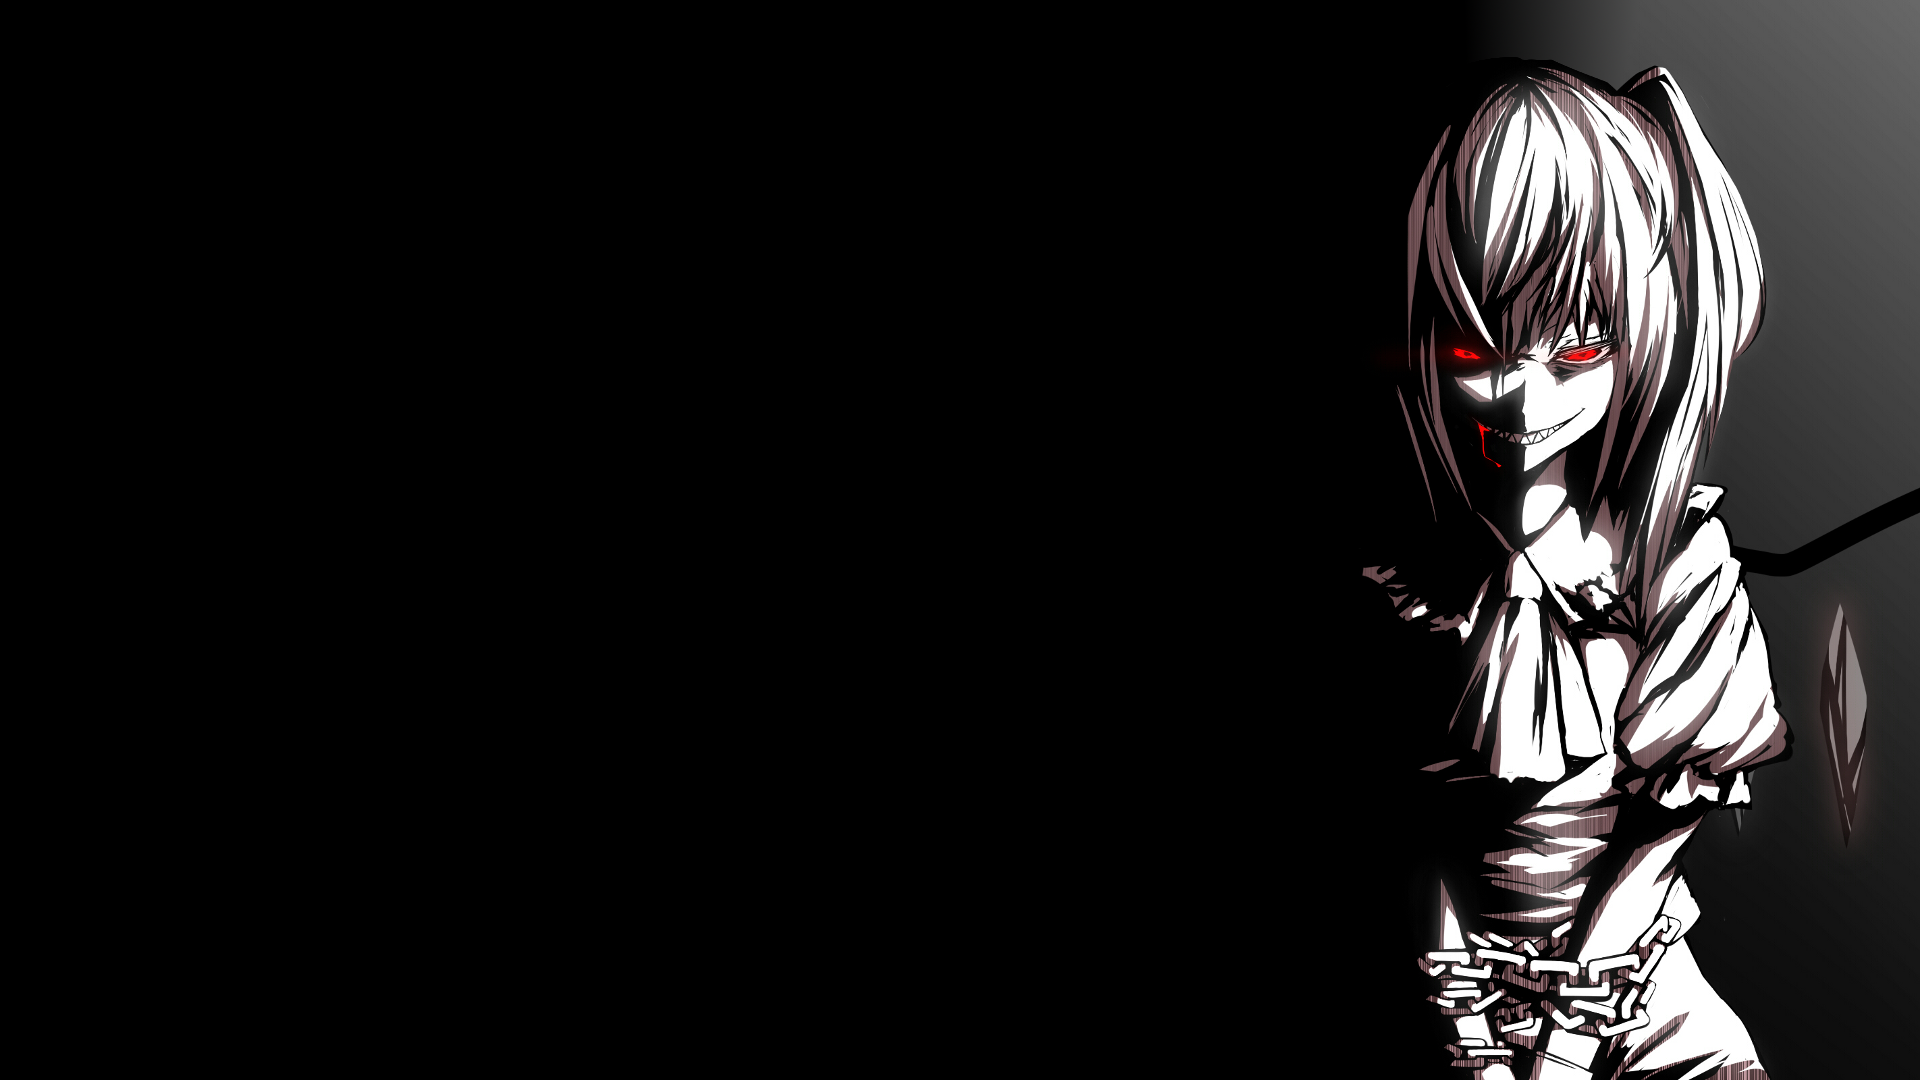 anime 1325 wallpapers - photo #39